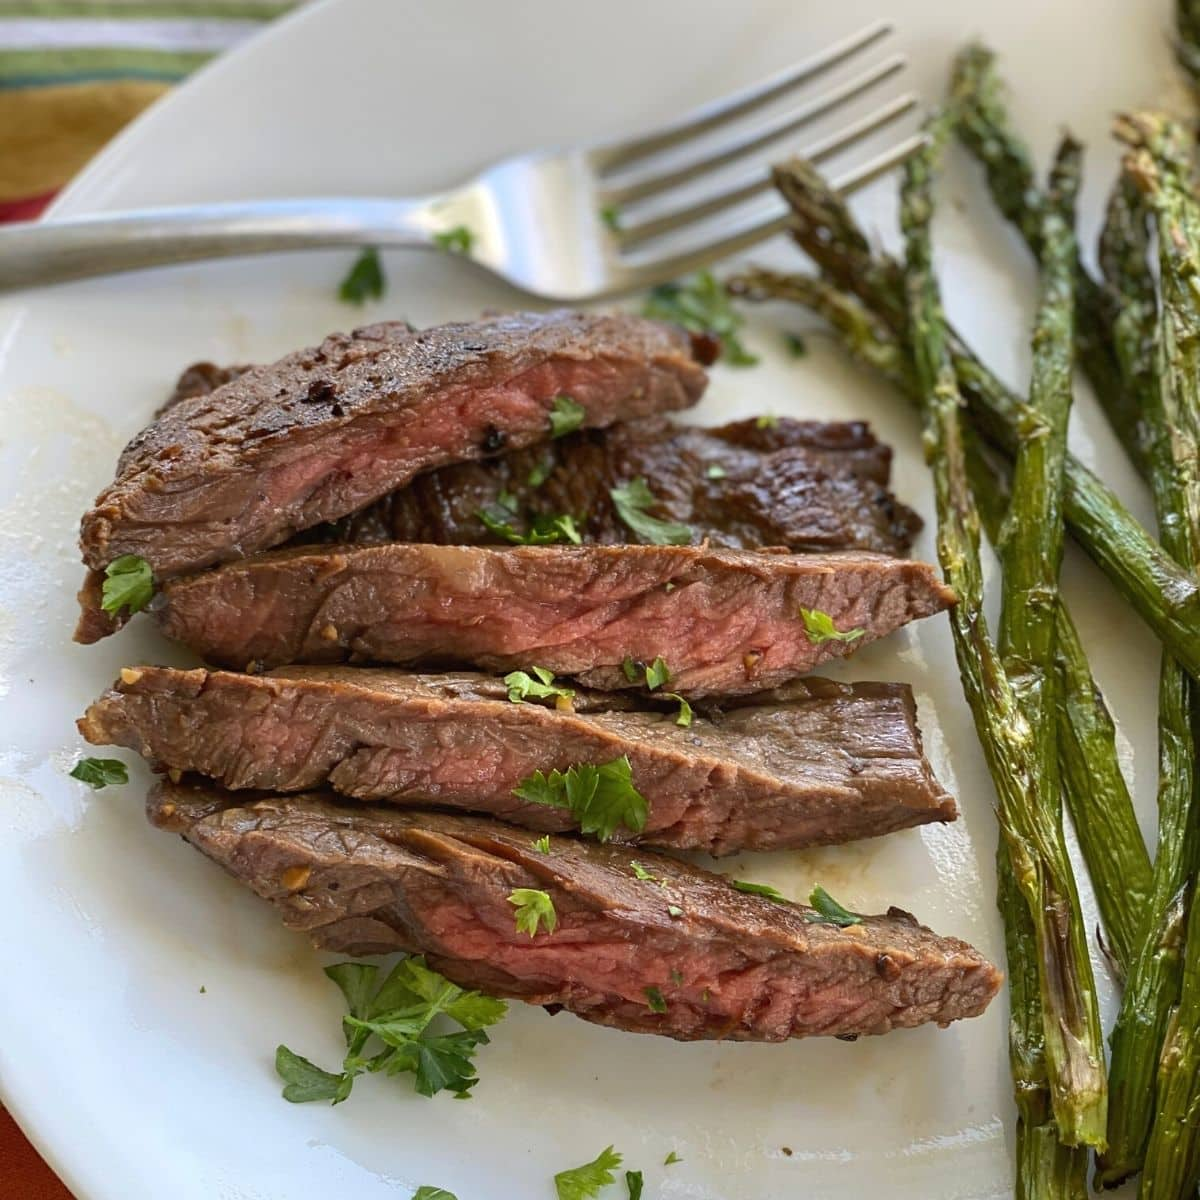 Cooked flap steak on plate with asparagus and fork.